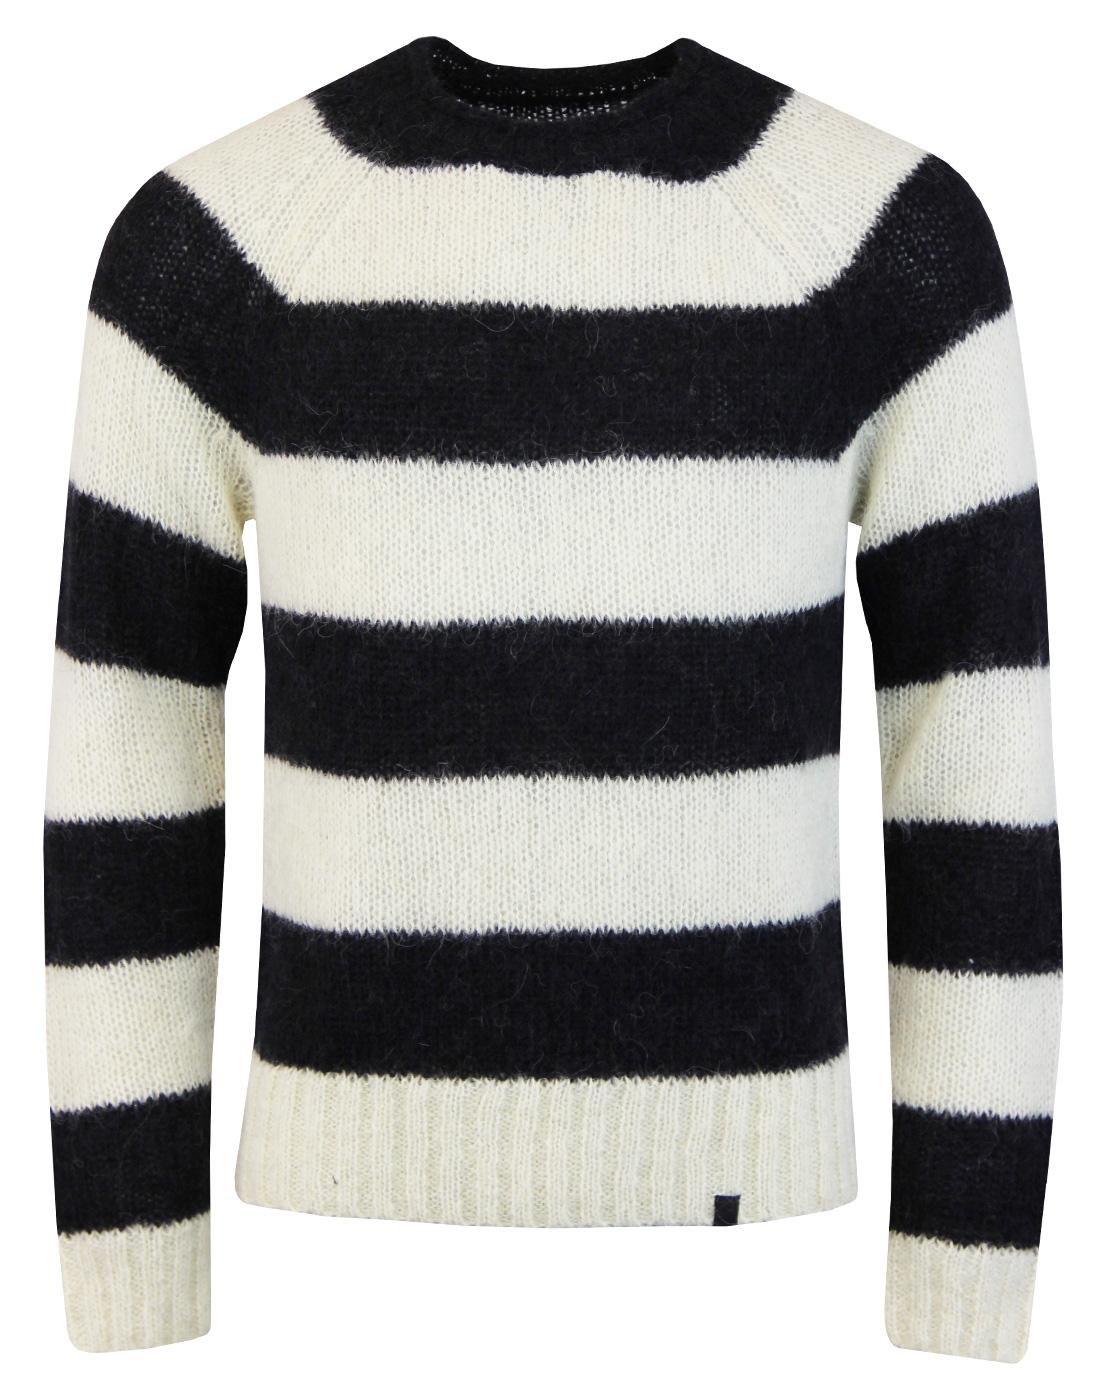 Scream PRETTY GREEN Retro Mod Block Stripe Jumper